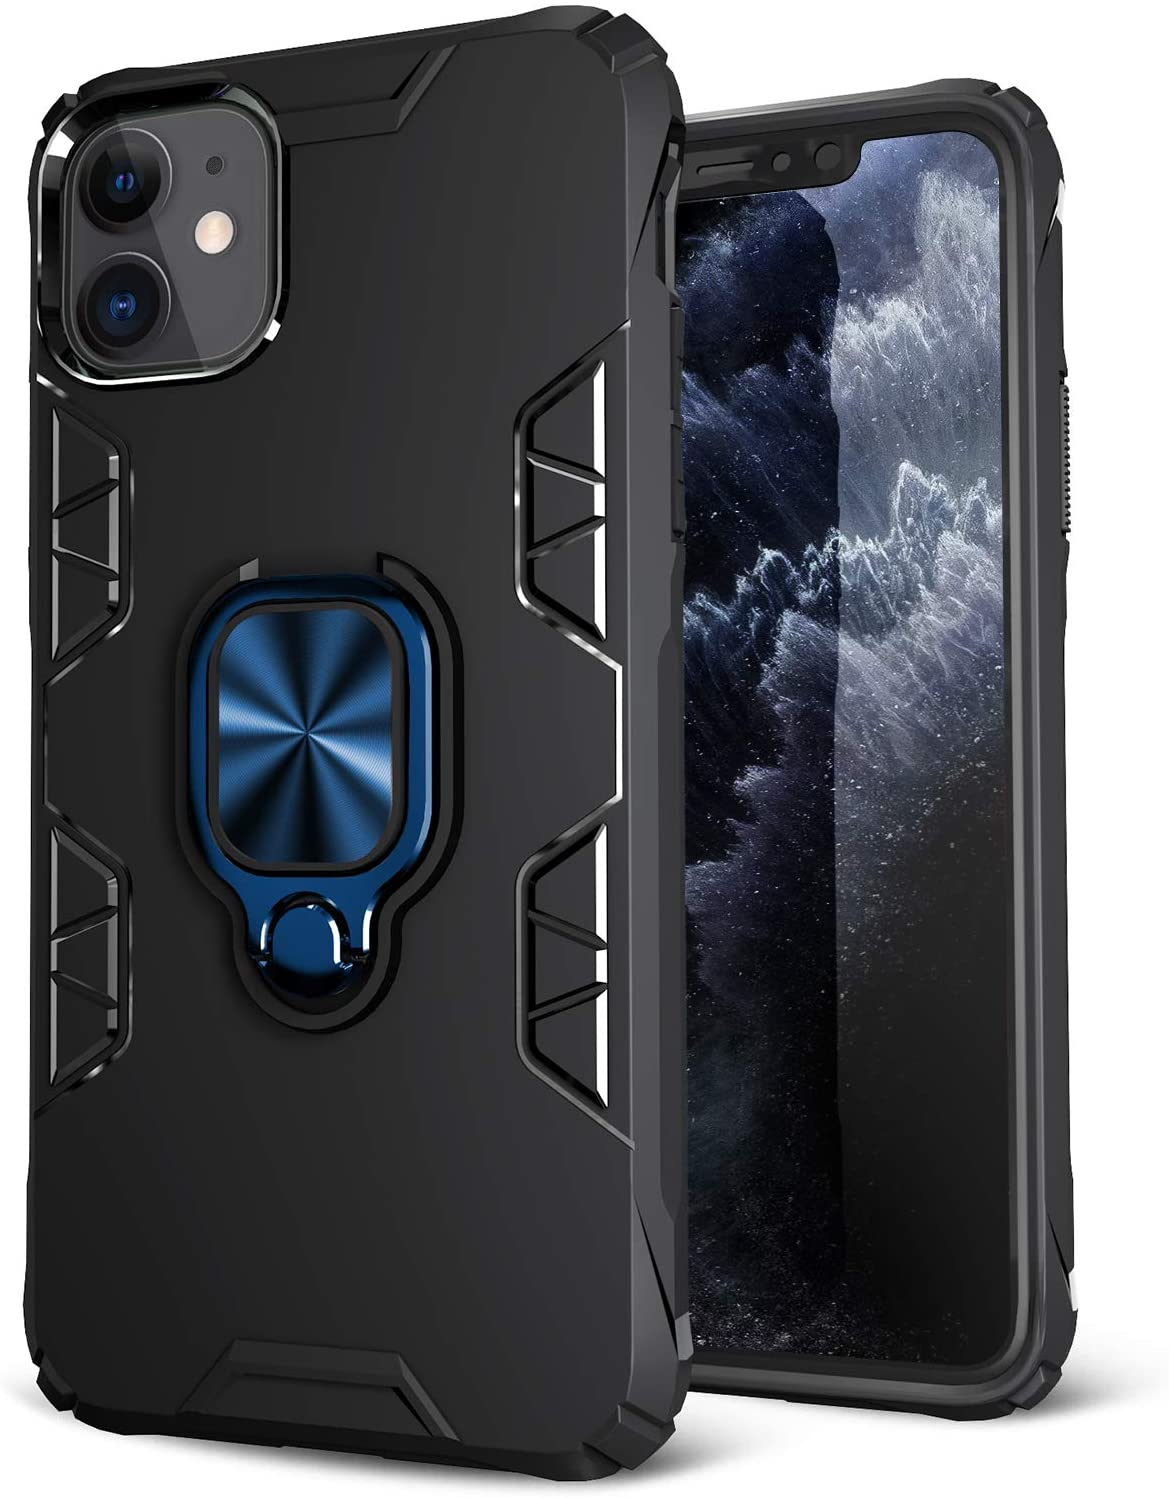 Get 50% off on iPhone 11 Protective Case